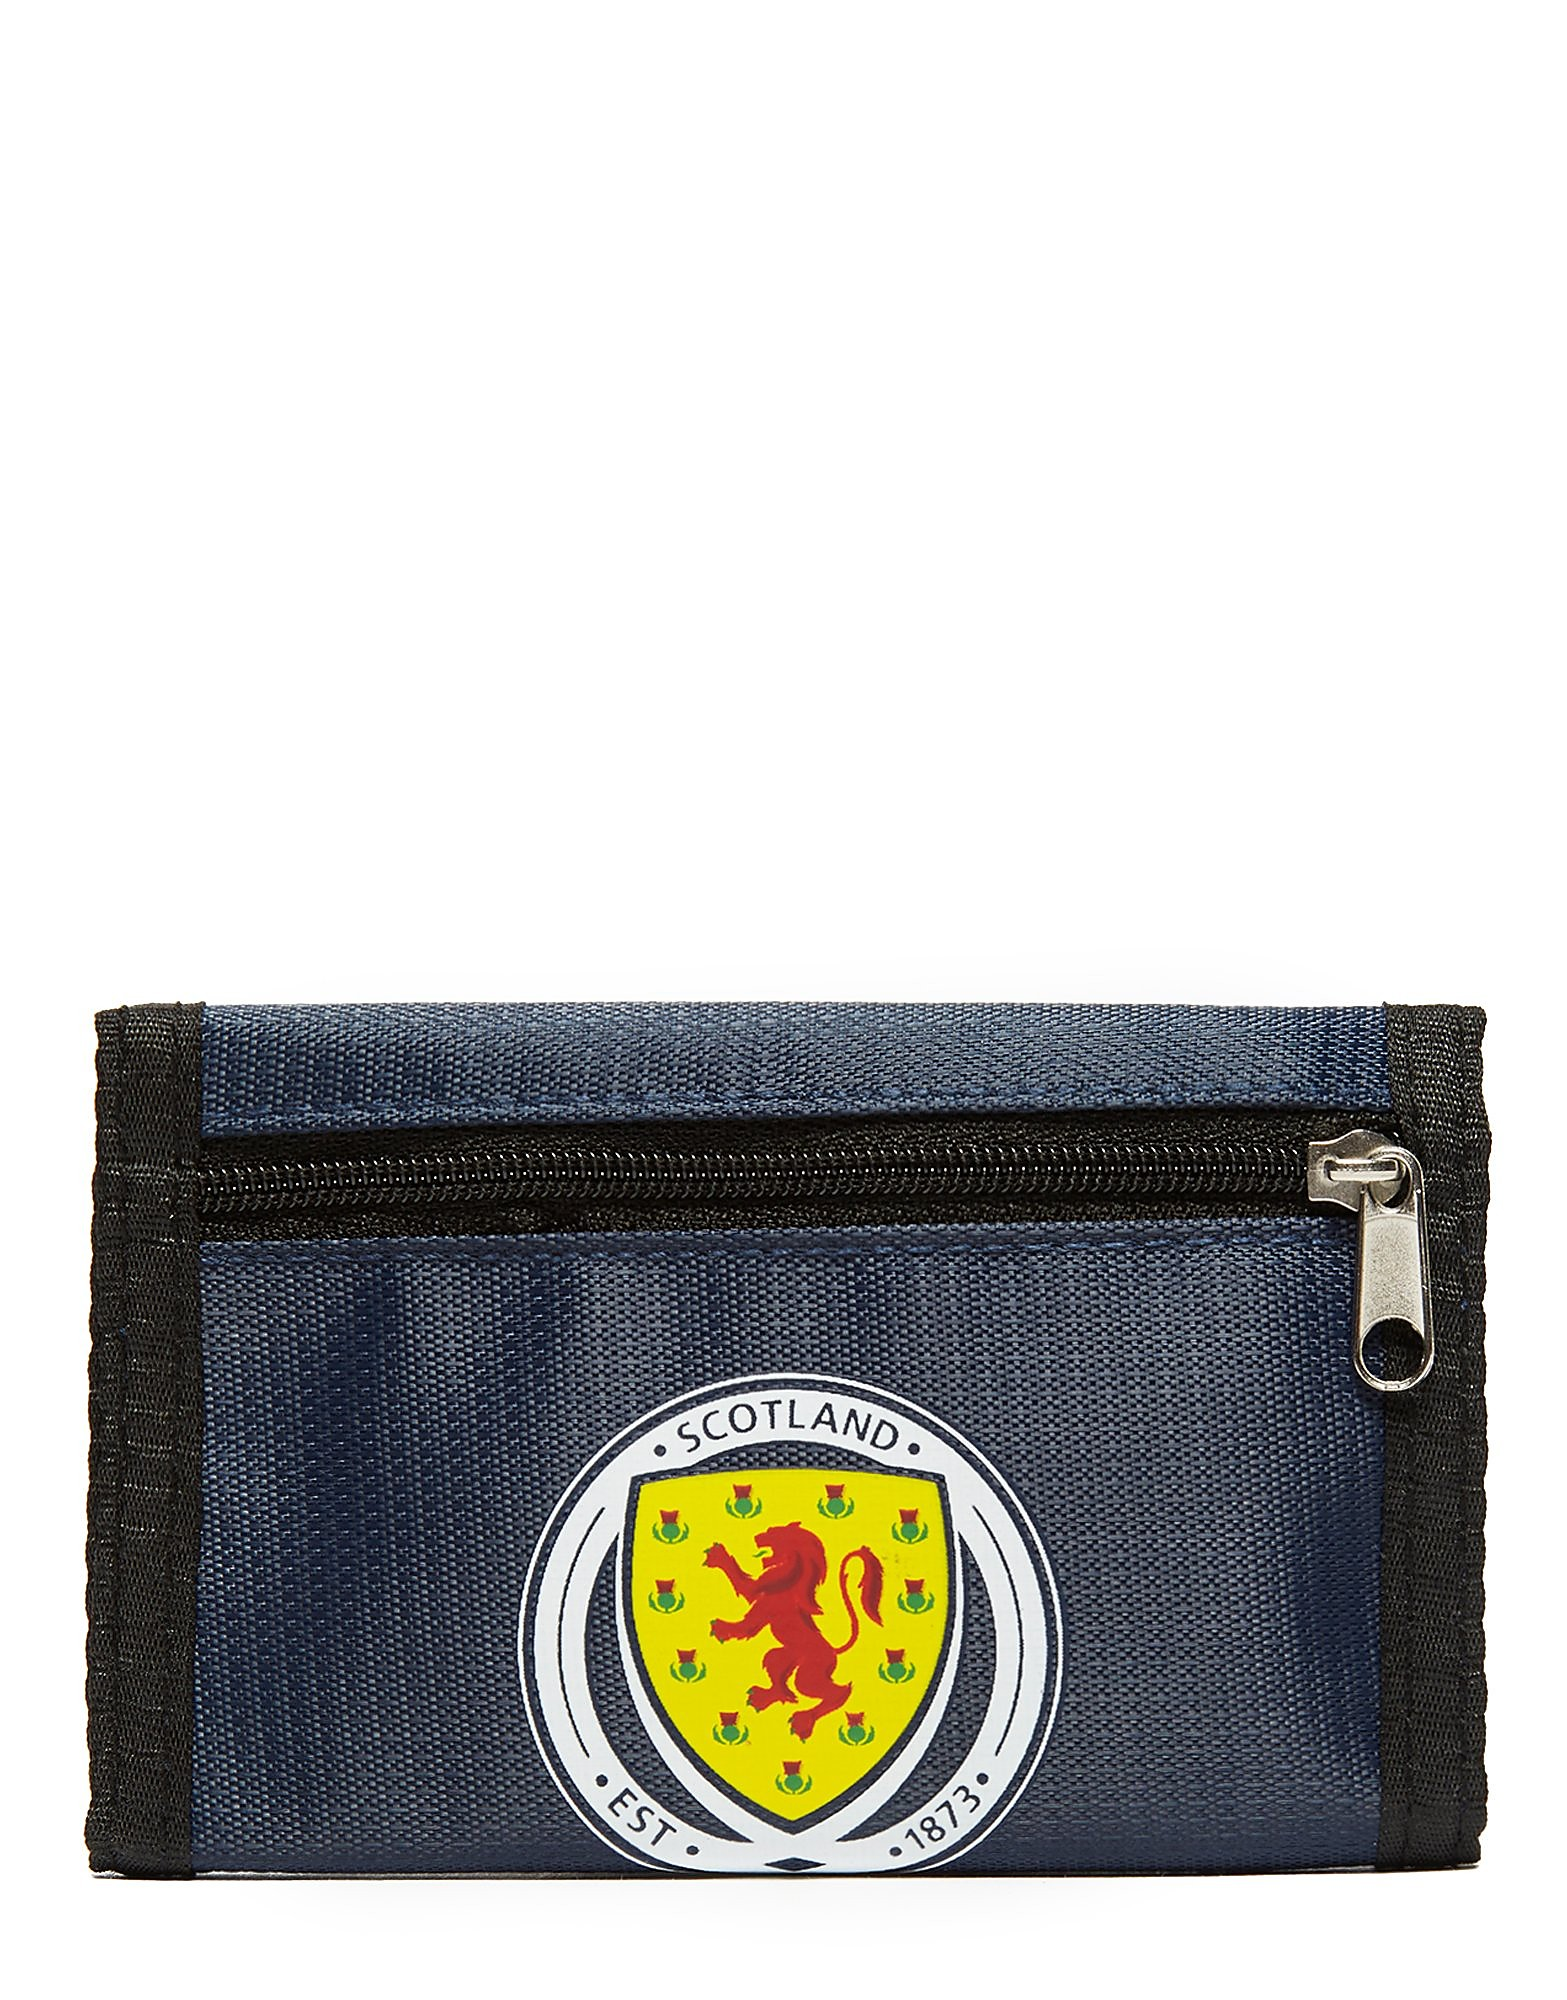 Official Team Scotland FA Wallet